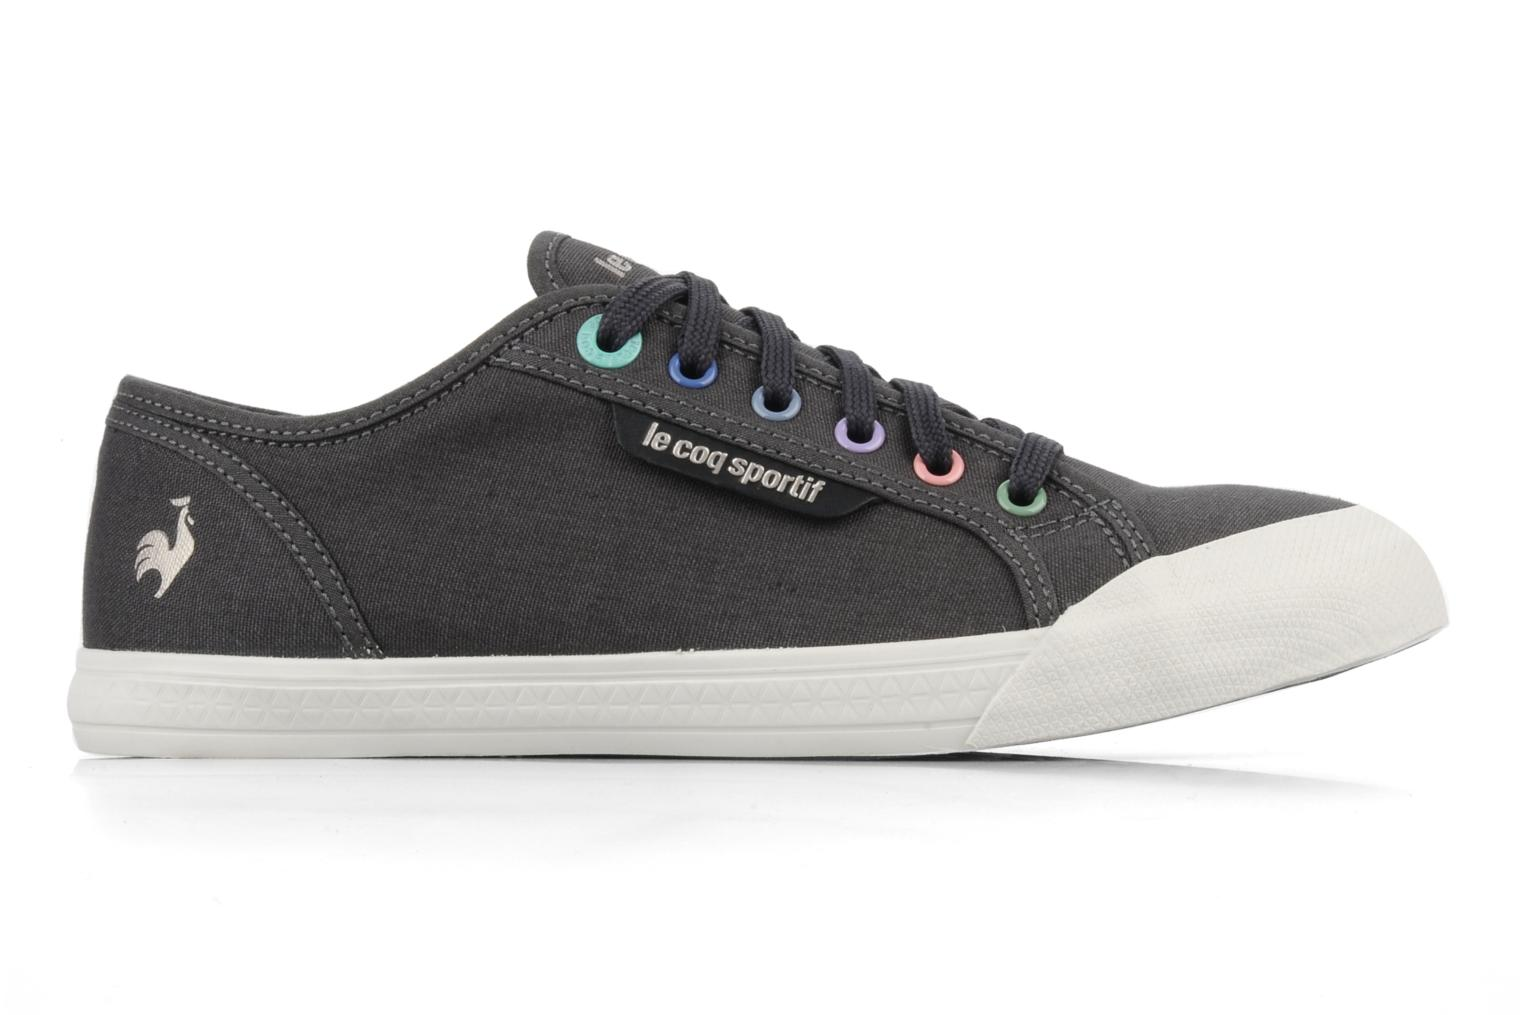 Le coq sportif deauville plus shaded w trainers in grey at - Le coq sportif deauville plus ...